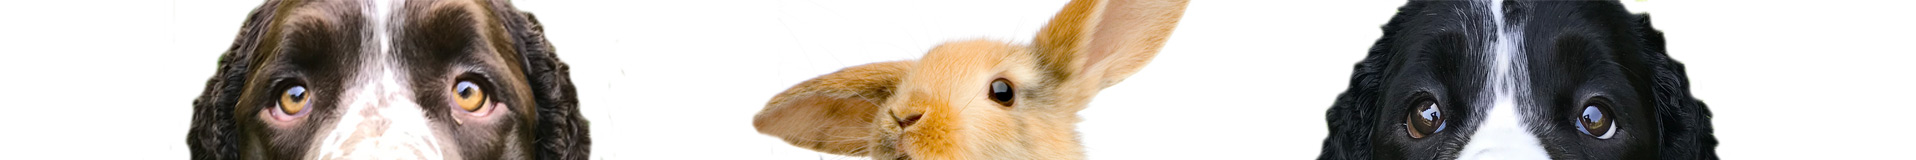 Dogs-bunny-banner